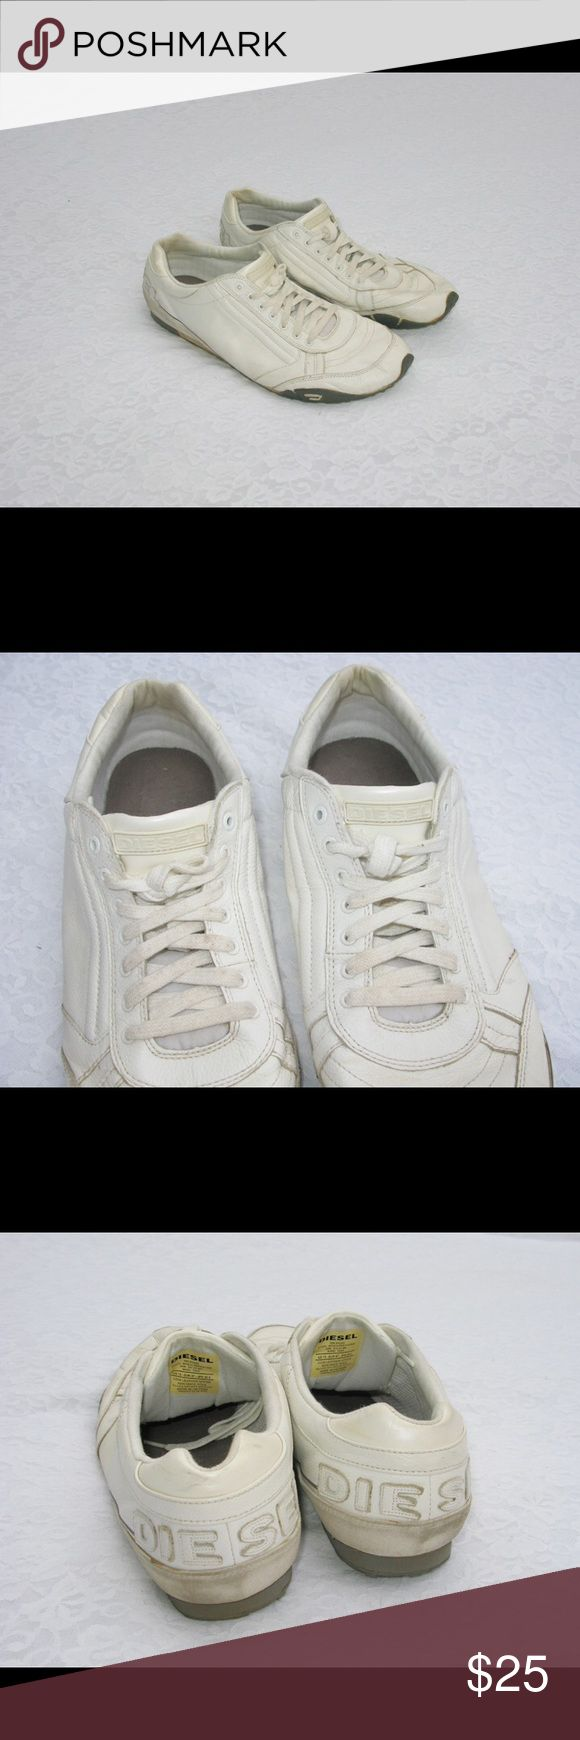 Diesel Sneakers This is for an amazing pair of Diesel Logo Sneaker Shoes.   Size 13  Condition: used  SOLD OUT!! You CANNOT find these in stores! Very Topman / Urban Outfitters Diesel Shoes Sneakers